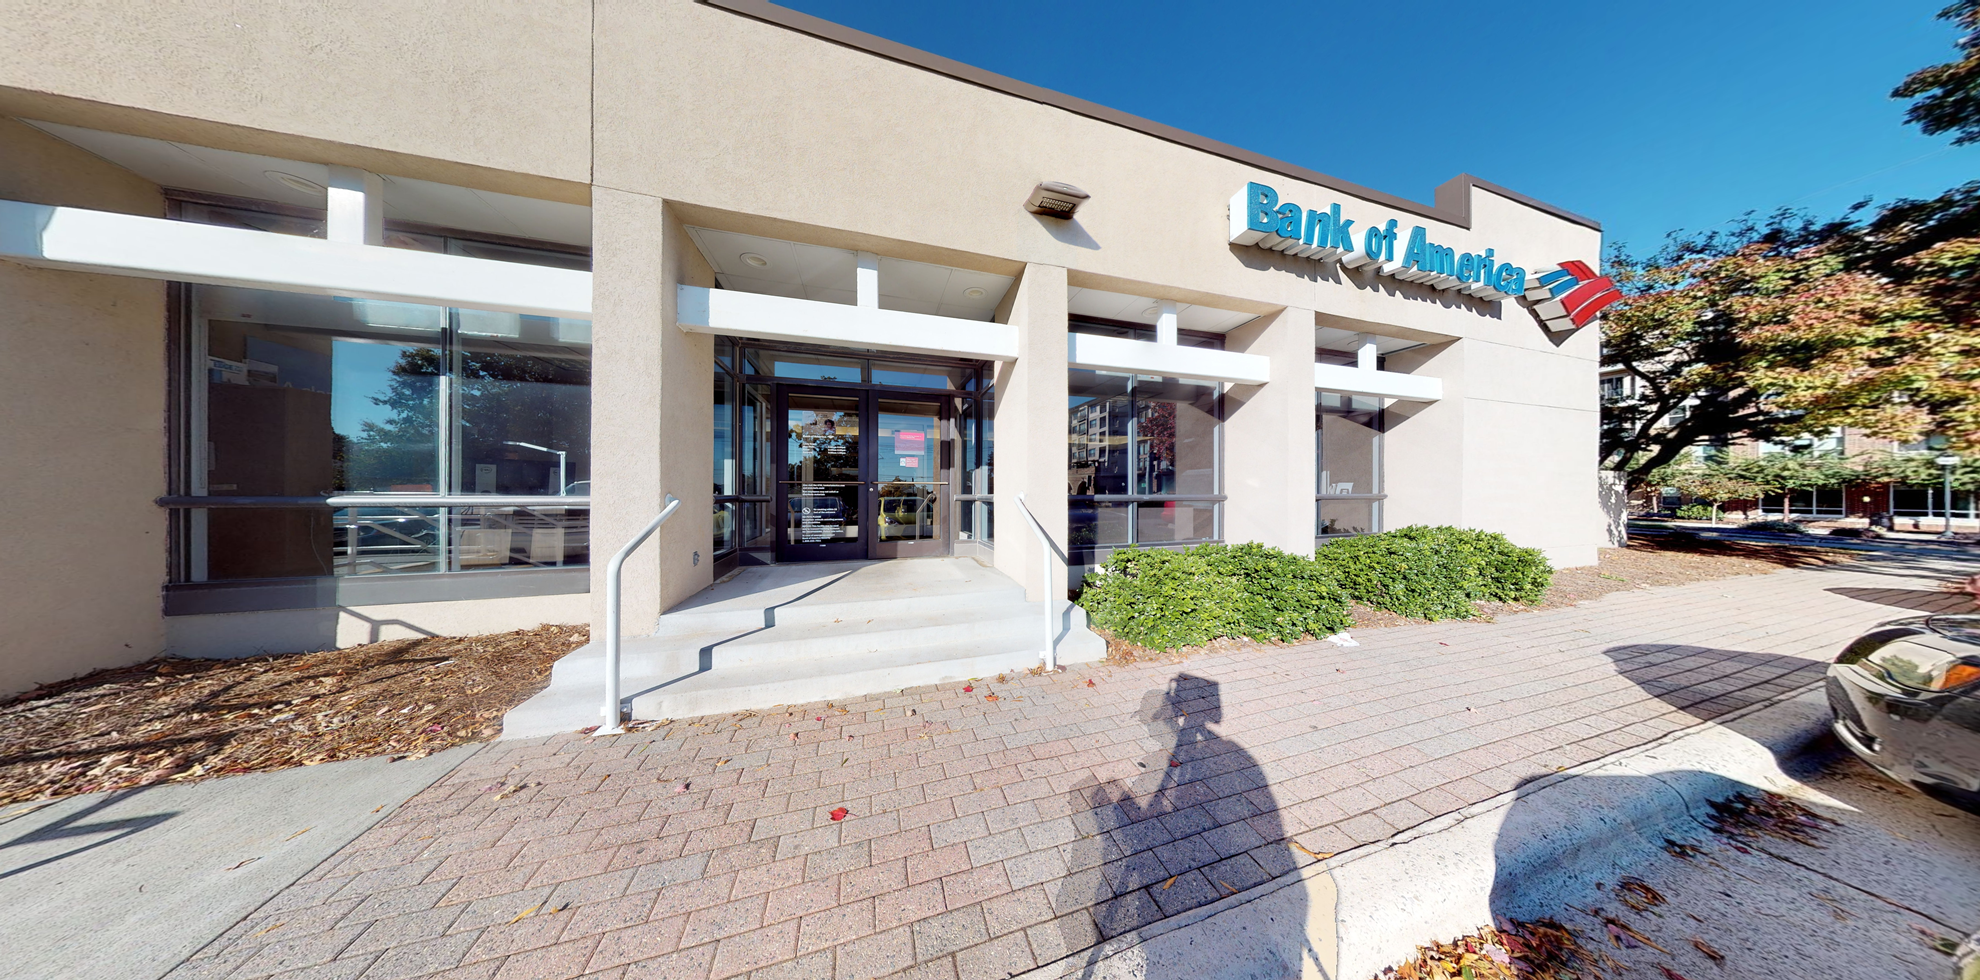 Bank of America financial center with drive-thru ATM   321 Oberlin Rd, Raleigh, NC 27605